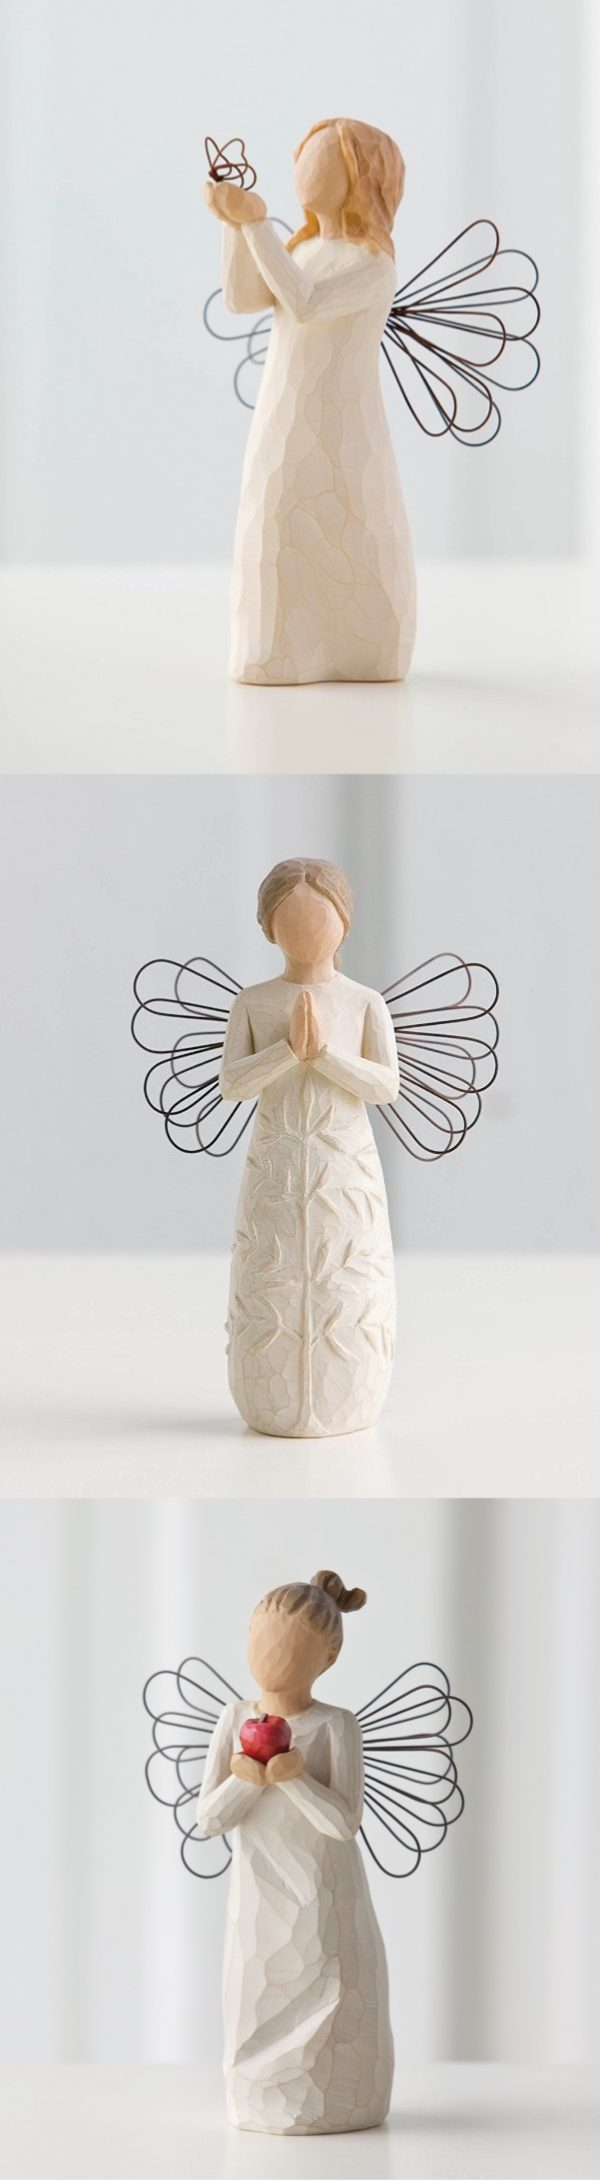 Willow Tree Angels: Designed by artist Susan Lordi, each of these angels represent a special moment in time. Find your own meaning in these beautiful wood and wire creations. Click on the image for dozens of more designs.